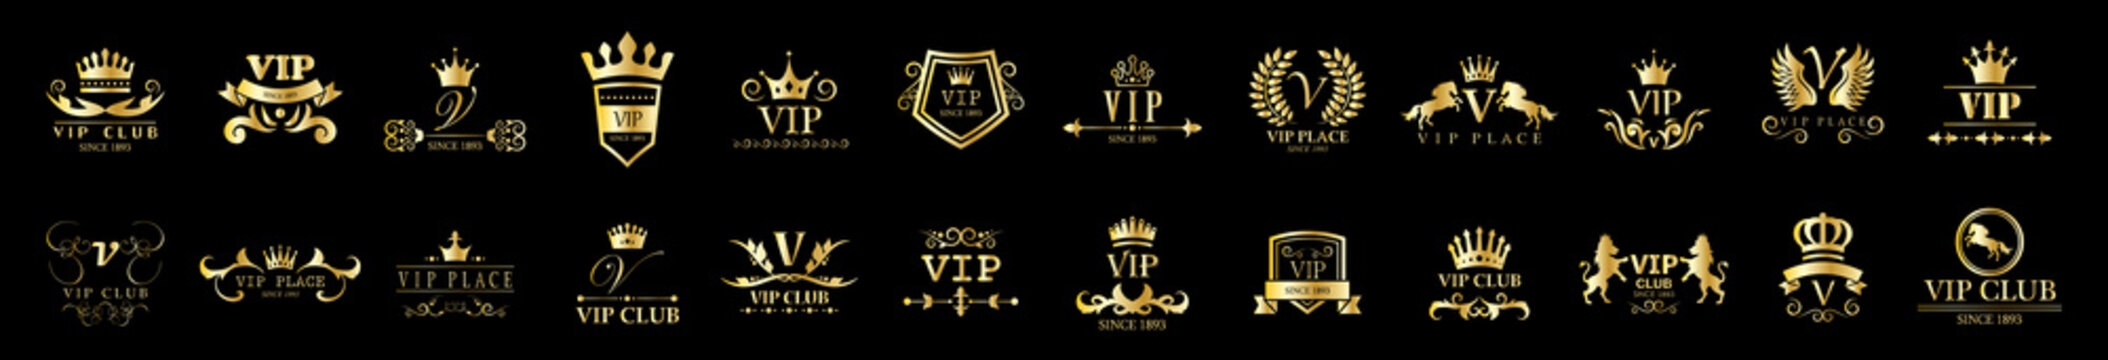 Golden Vip Logo Set - Isolated On Black Background, Vector Illustration. Icons Collection Of Golden Vip Logo, Gold Emblem And Label. Useful For Badge, Seal And Design Template. Luxury Logo Vector